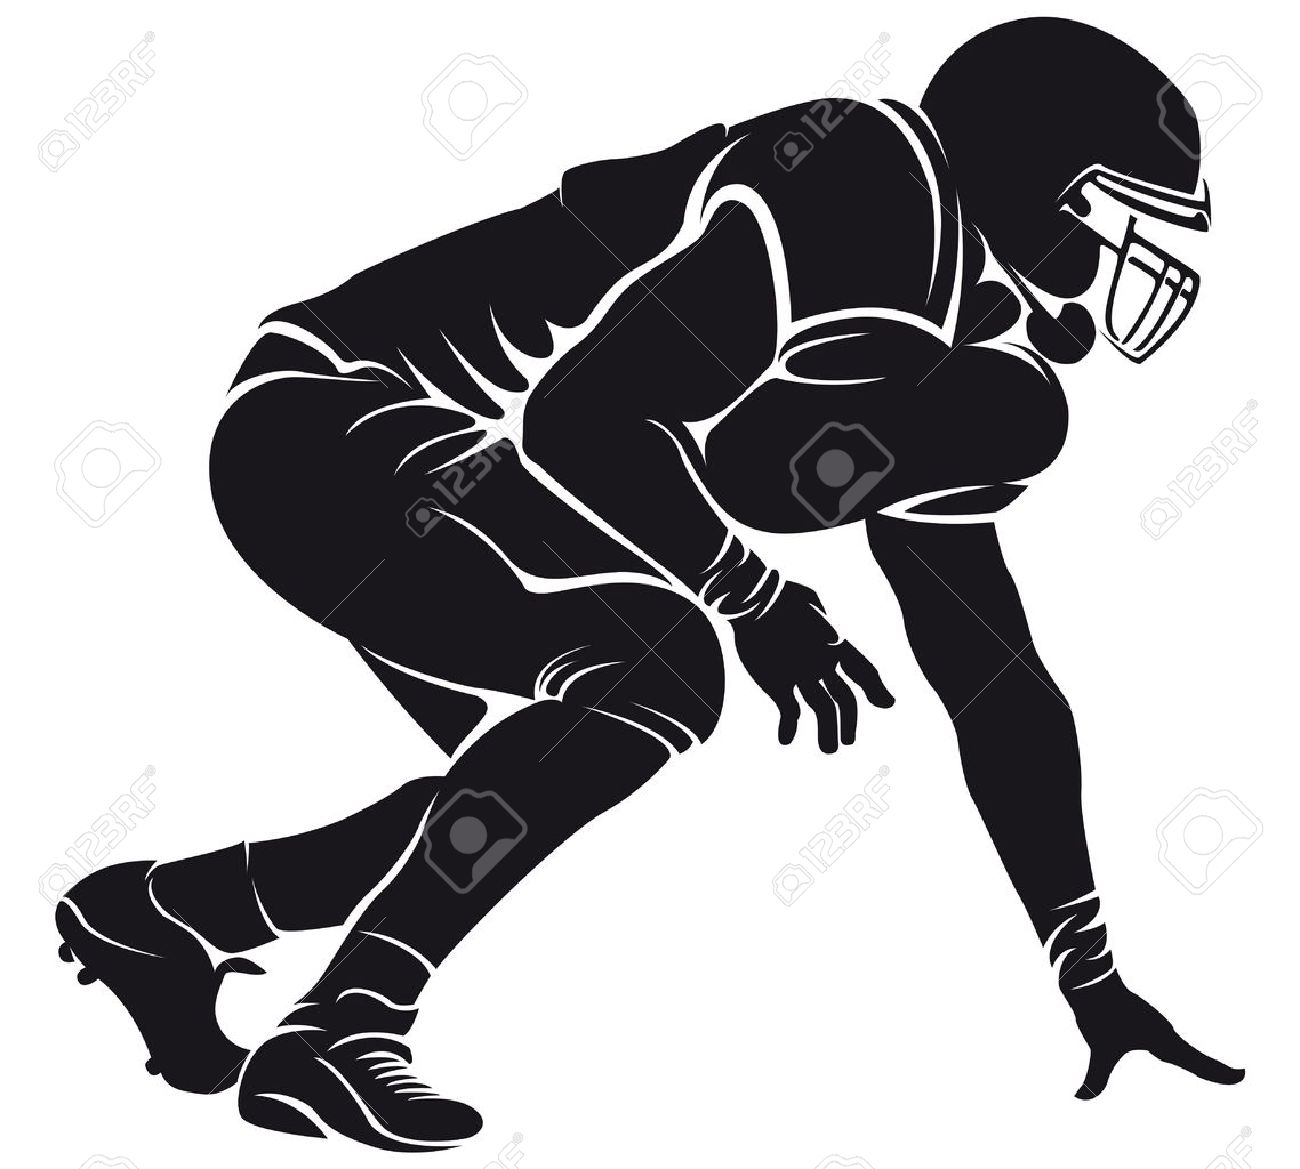 hight resolution of clipart football players silhouette 18